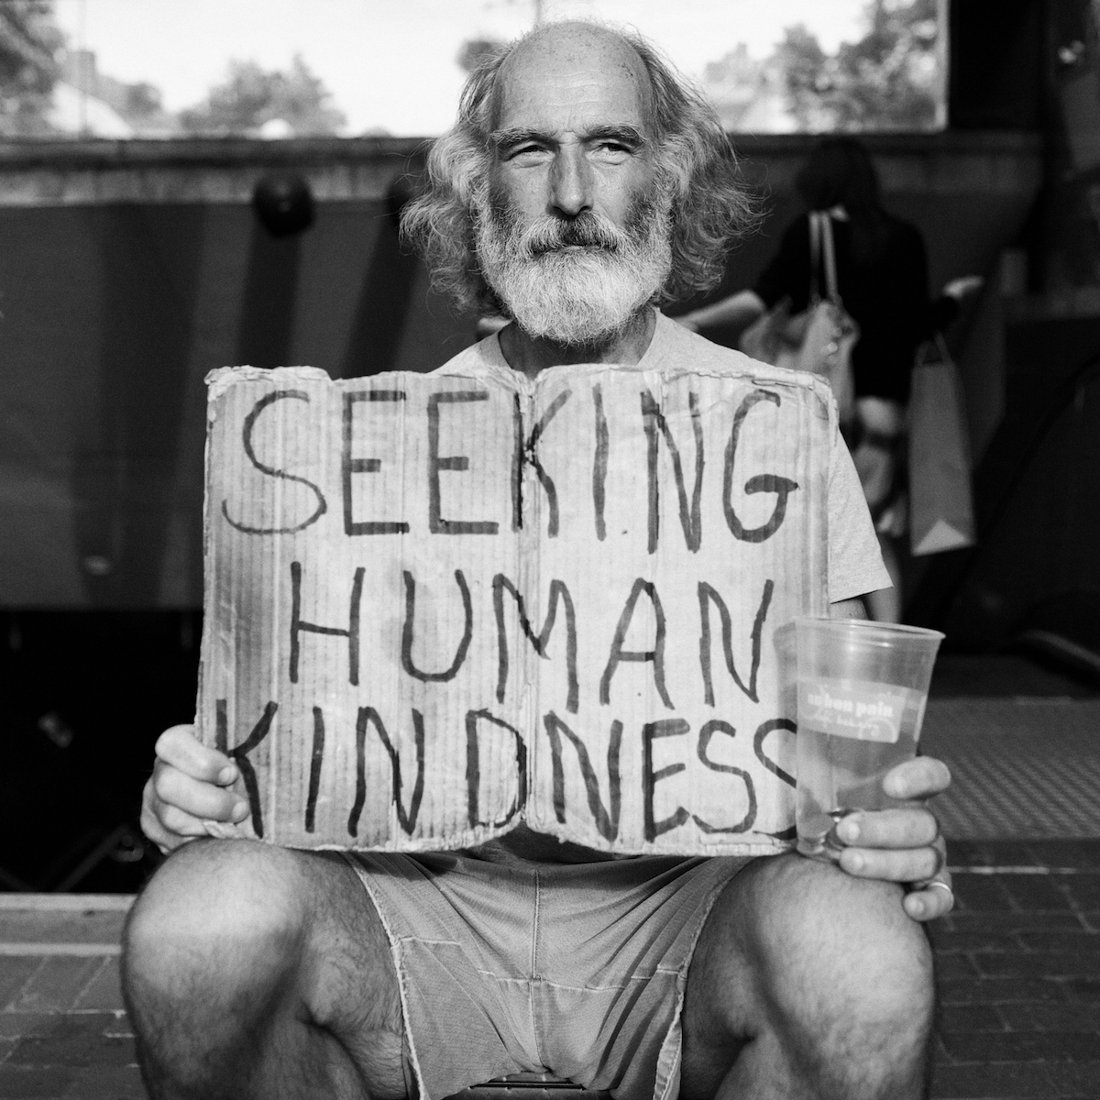 Title: Seeking Human Kindness | Author: Almond Butterscotch | Source: almondbutterscotch | License: CC BY-NC-ND 2.0